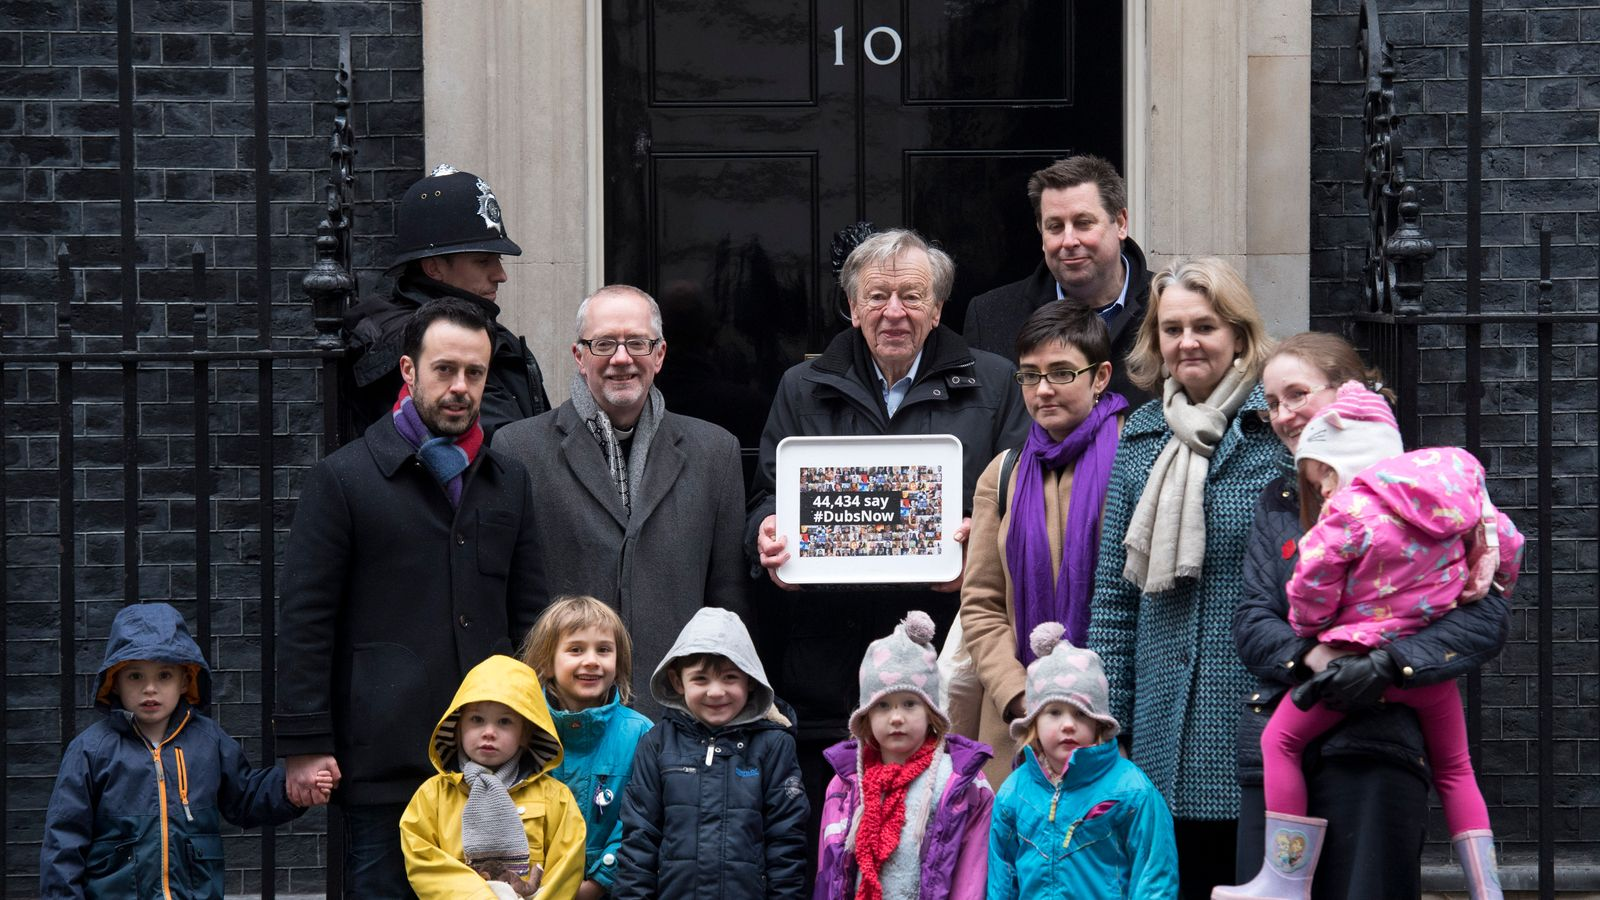 Lord Dubs and a group of child refugees delivered a petition to Downing St